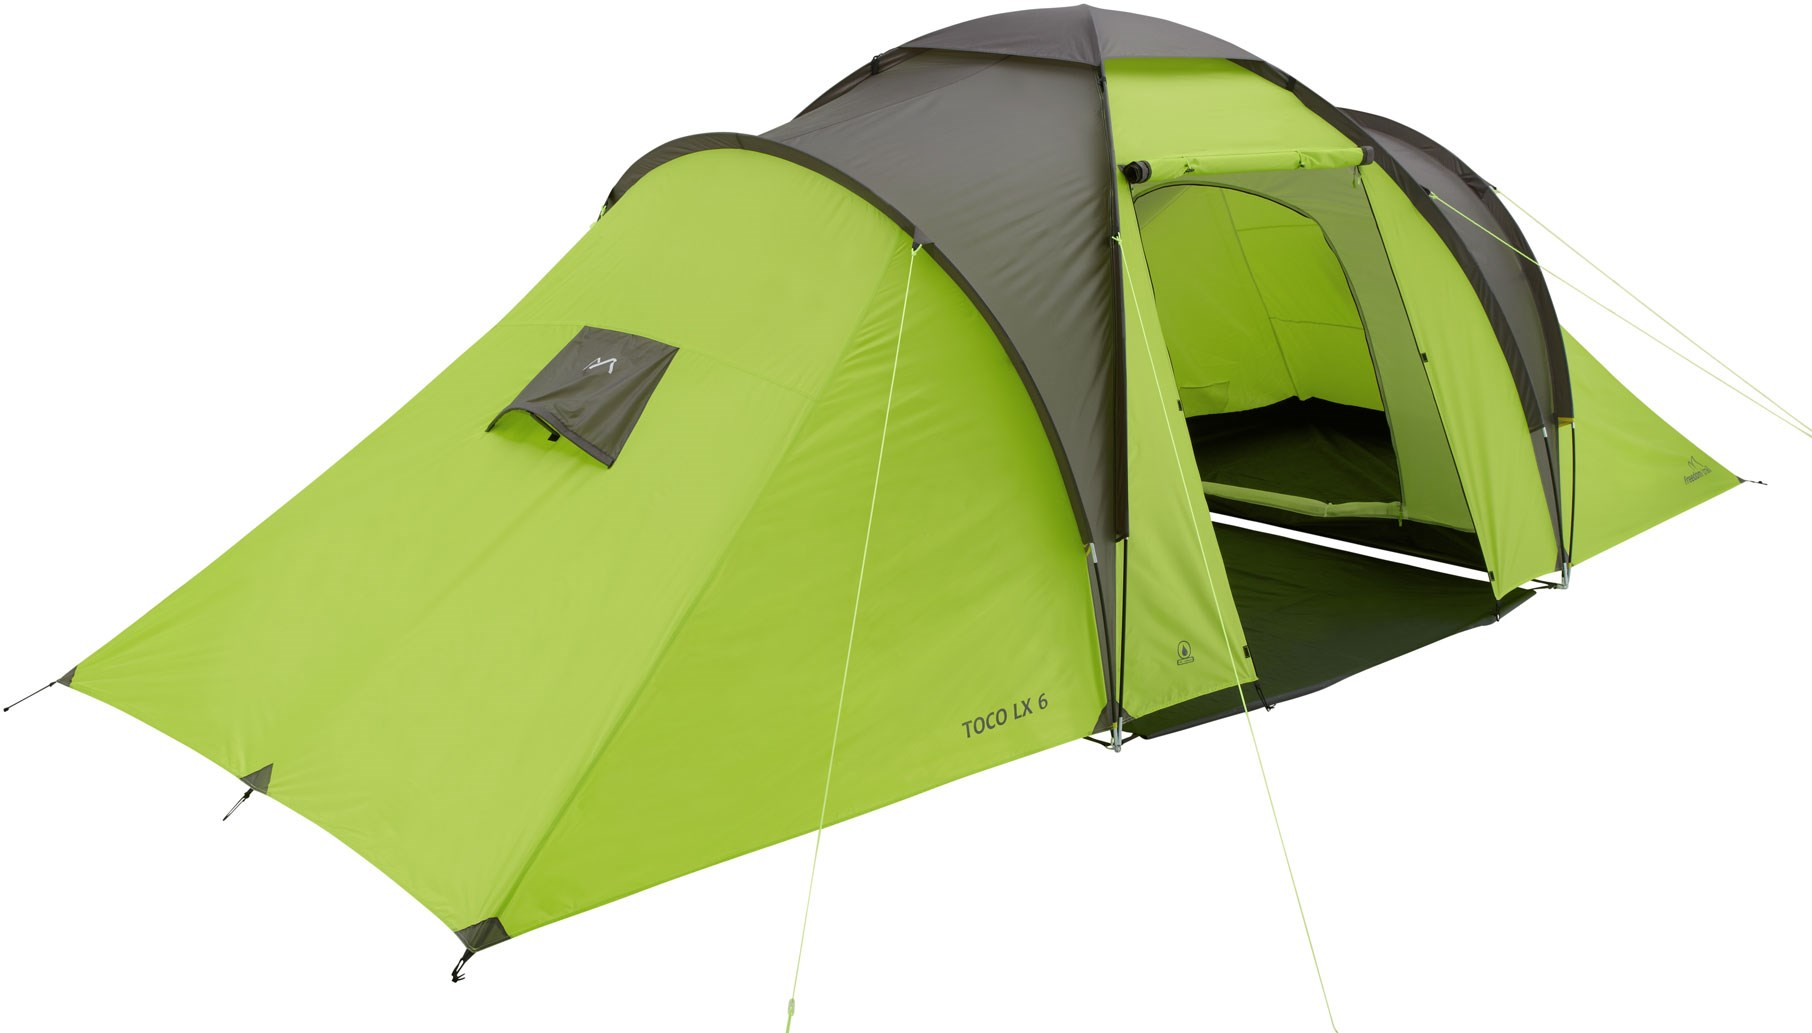 sc 1 st  GO Outdoors & Freedom Trail Toco LX 6 Tent | GO Outdoors